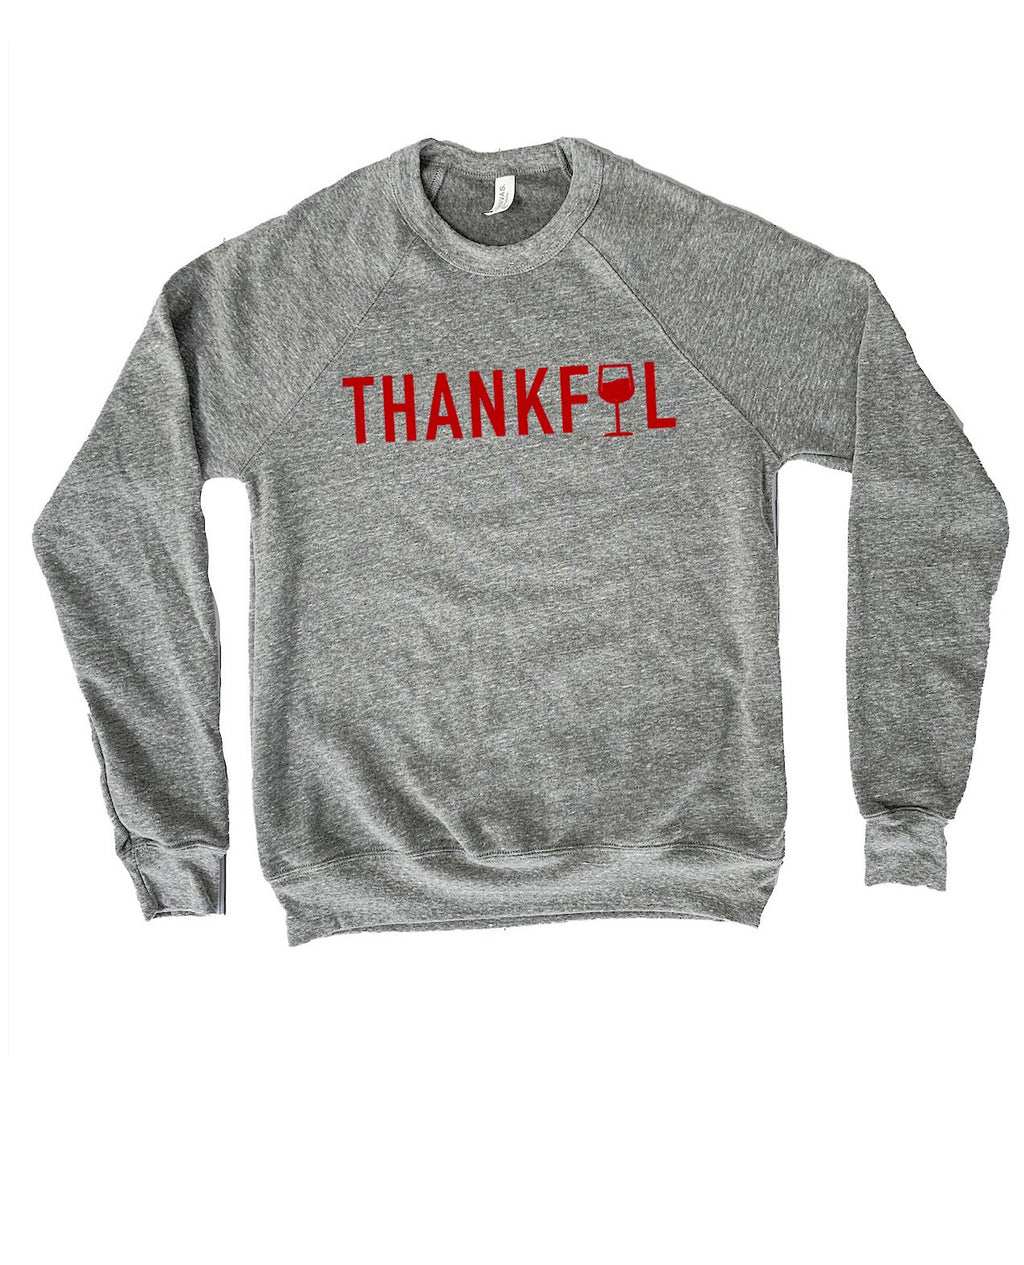 Be thankful this season with this cute Thanksgiving shirt! There's nothing more I'd rather be thankful for than a nice big glass of wine !